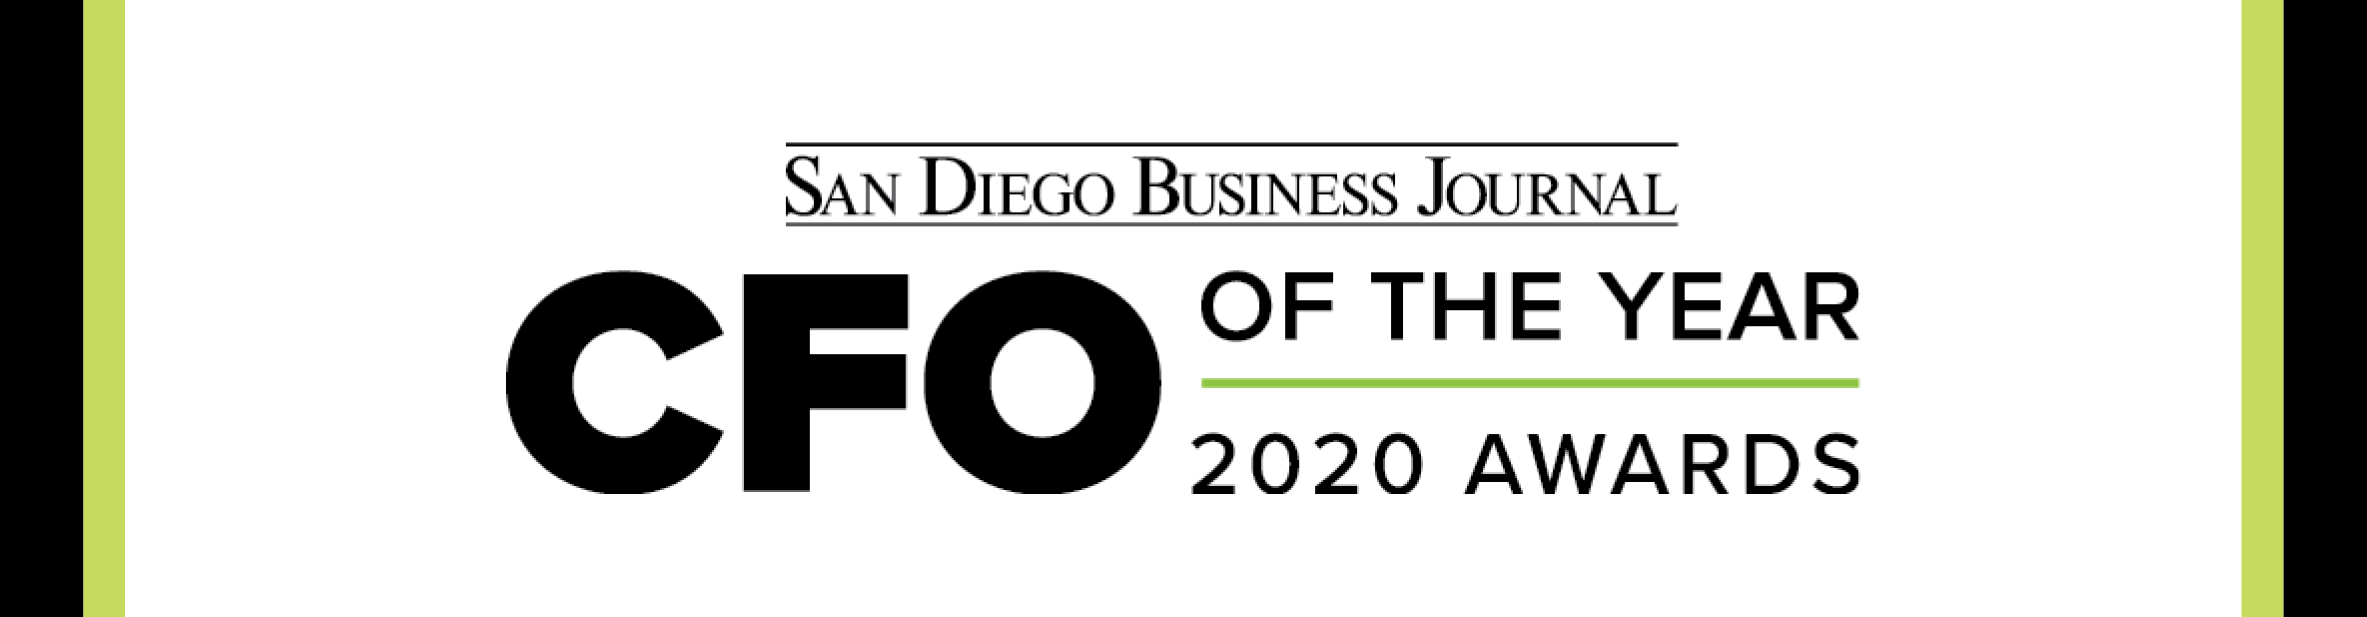 San Diego Business Journal CFO of the Year Awards